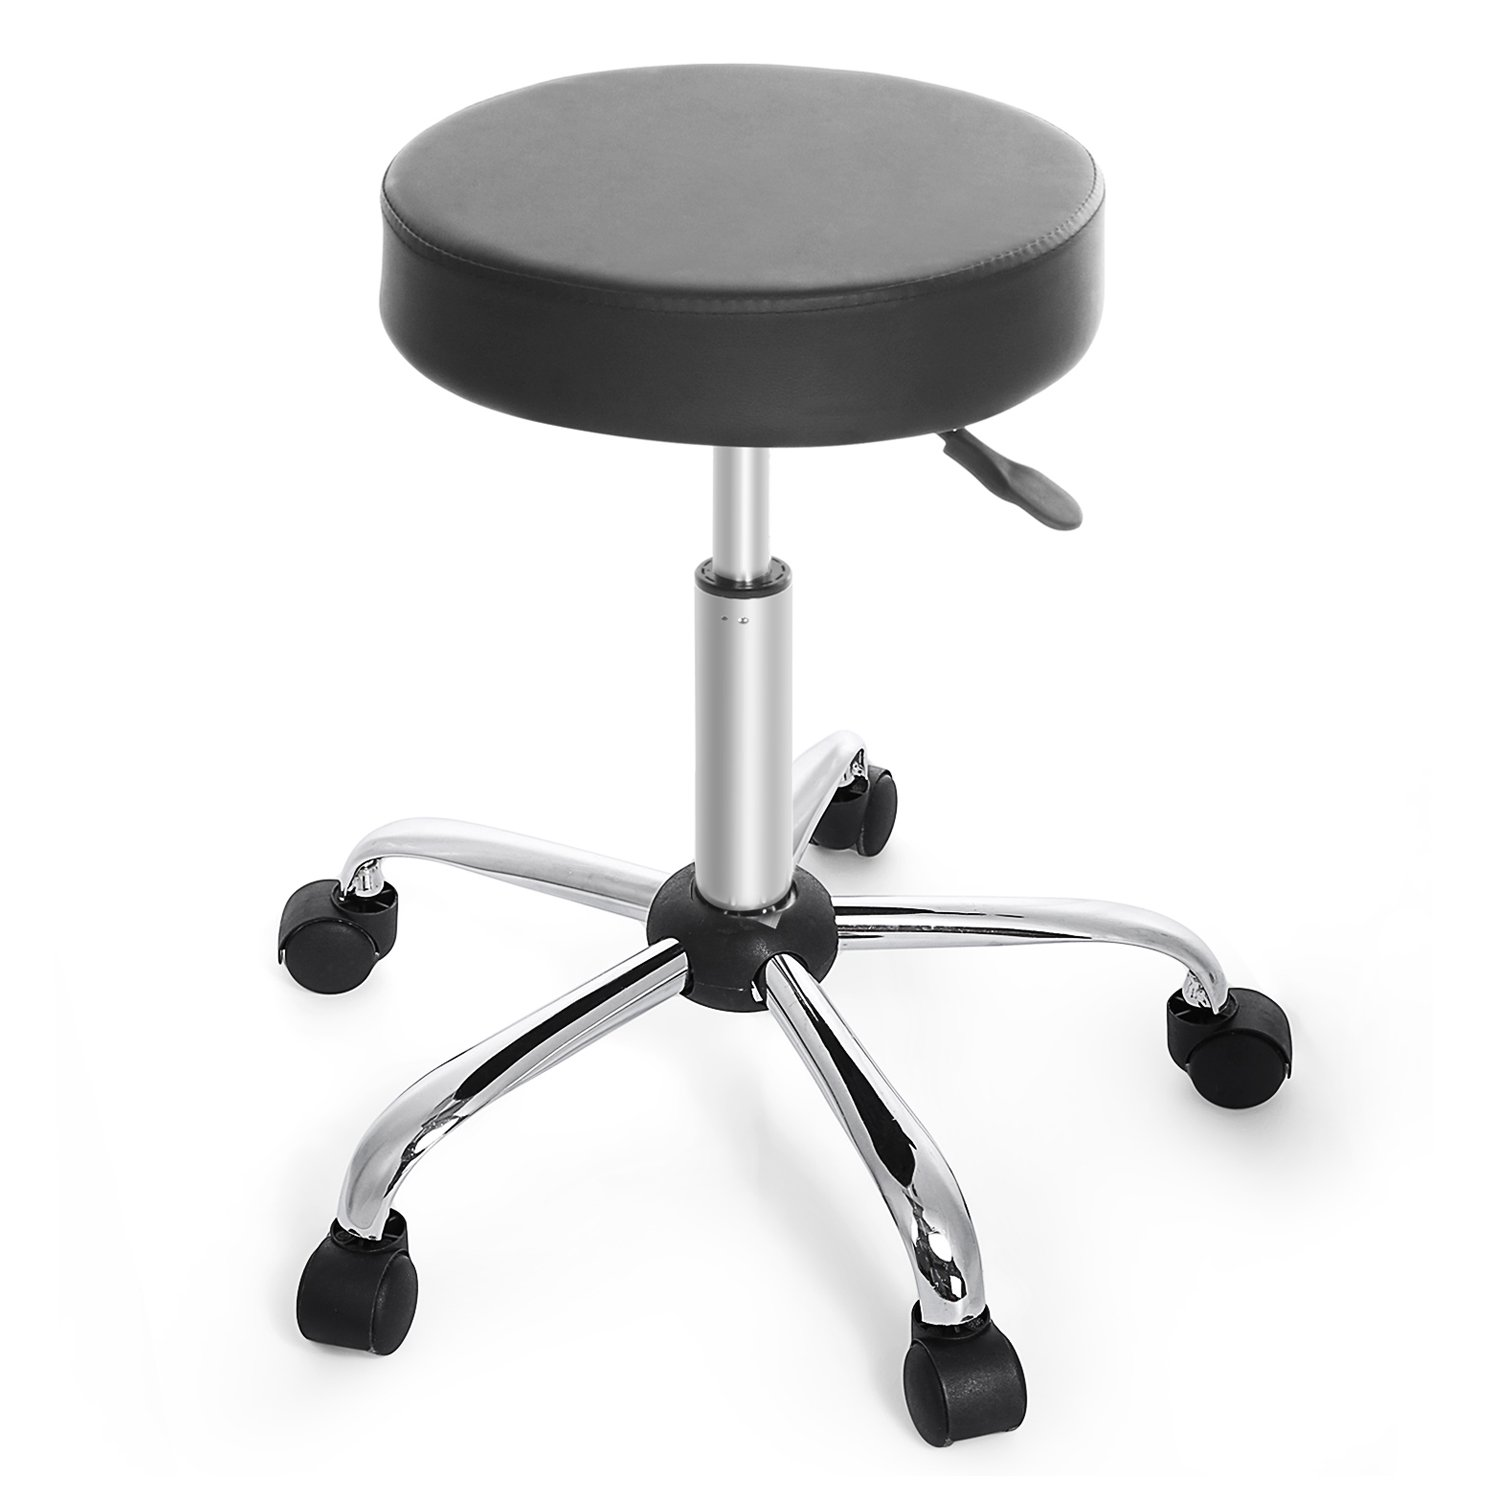 Amazon.com: Homdox Adjustable Rolling Stool For  Massage,Medical,Salon,Office: Home Improvement